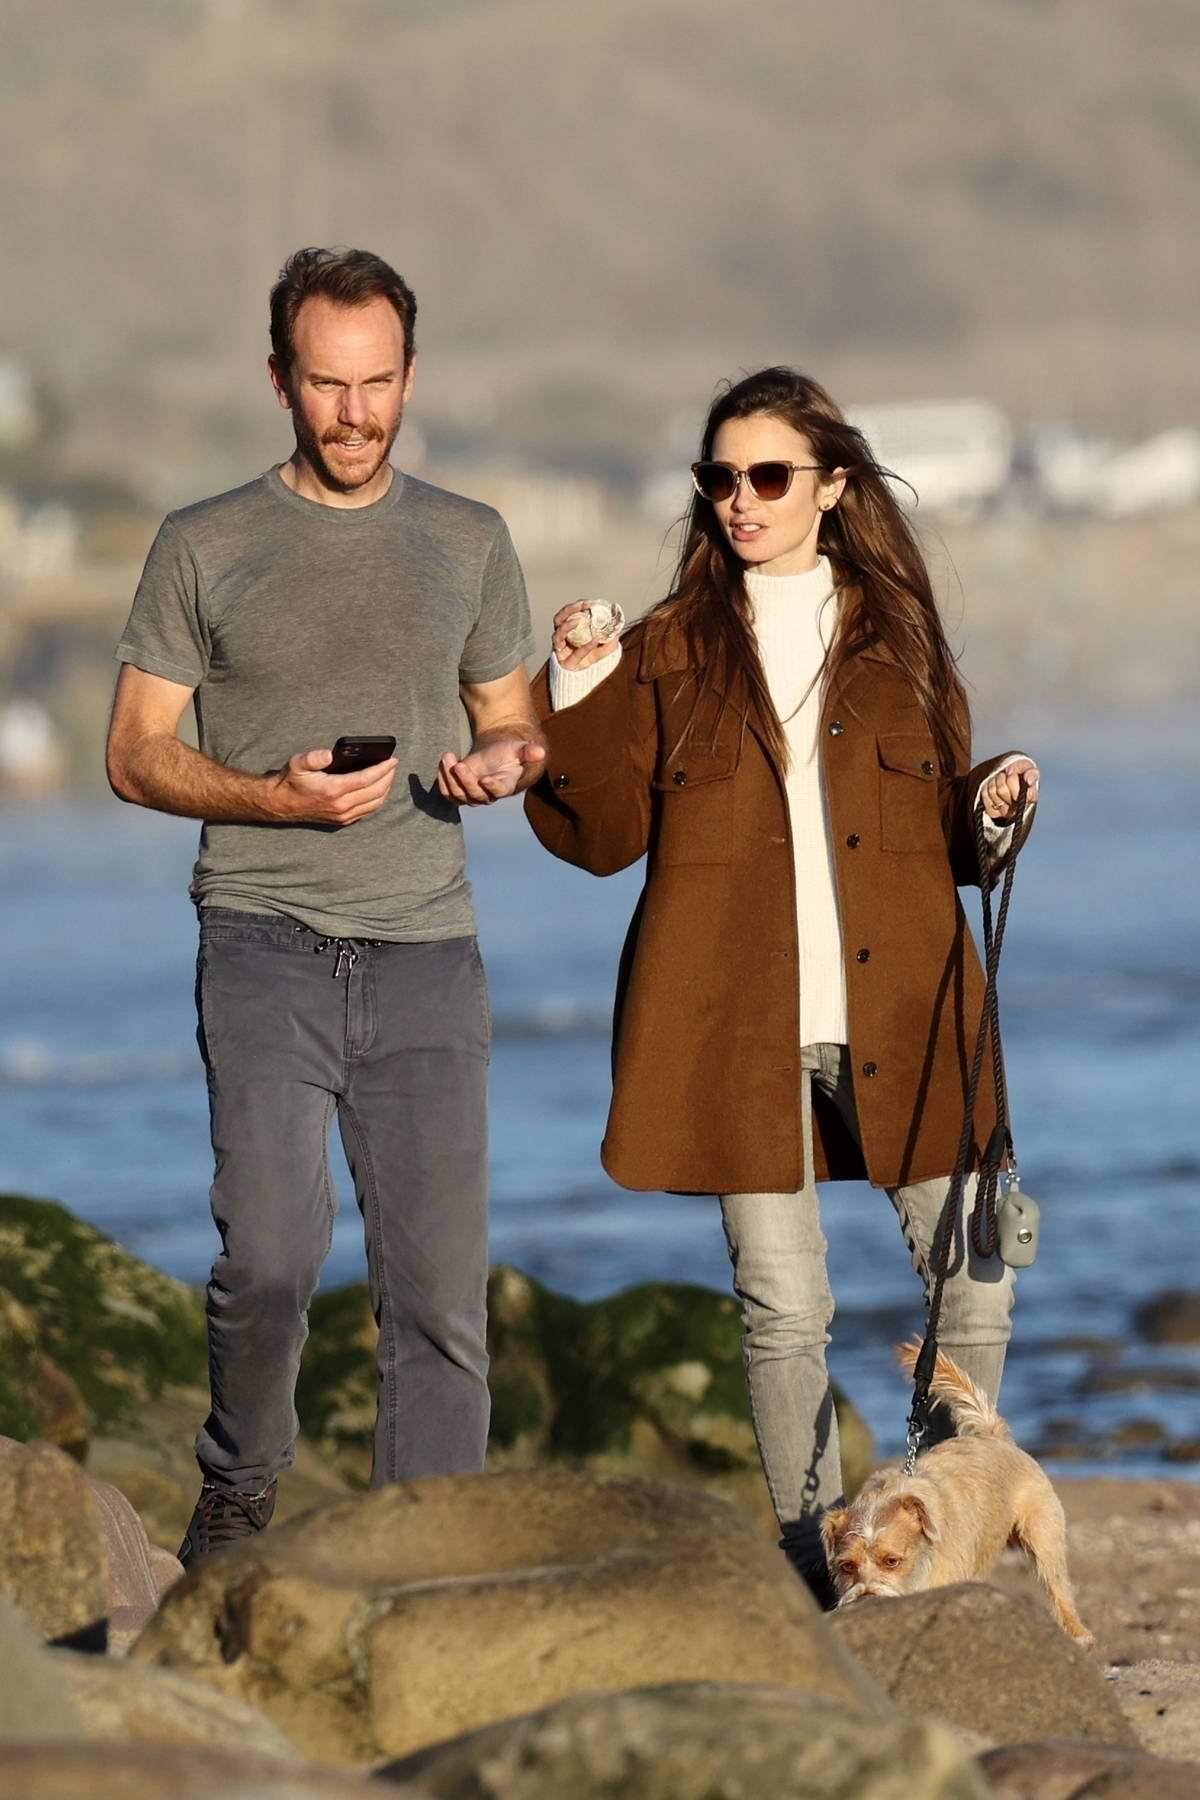 Lily Collins and Charlie McDowell enjoy a walk with their dog on a beach in Santa Barbara, California